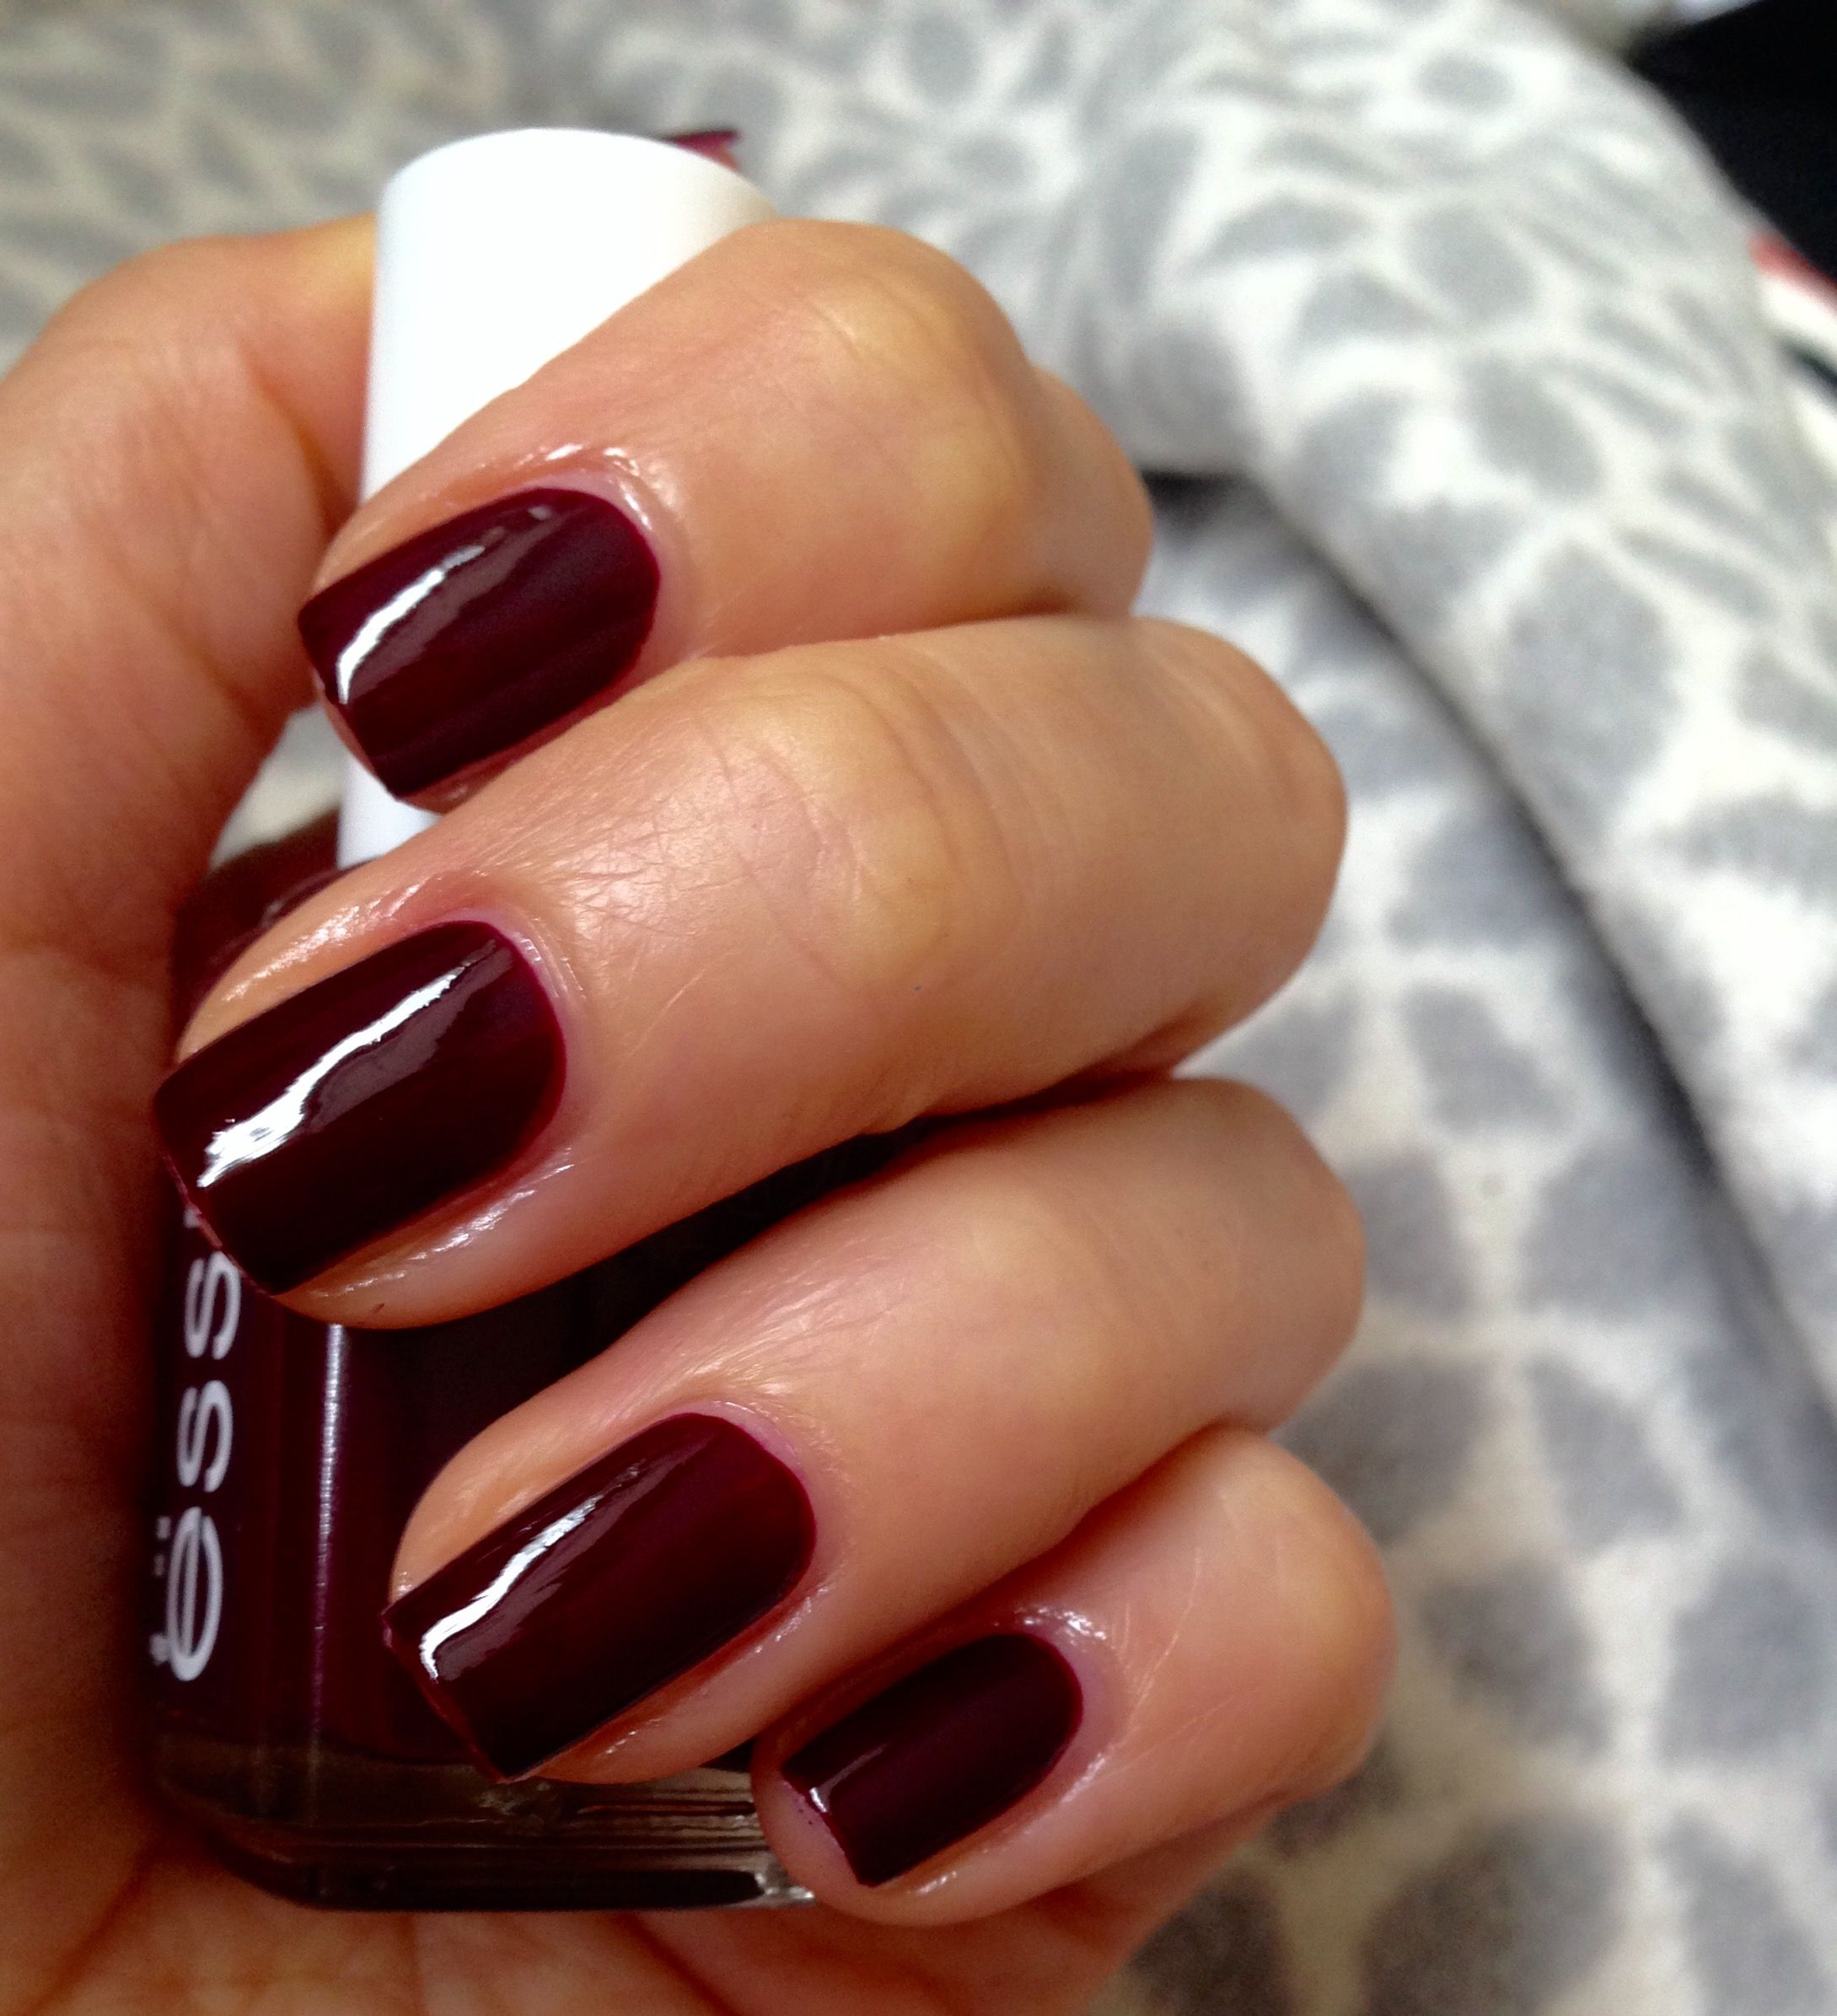 ESSIE Sole Mate # dark red nails #autumn nails | Nail art ...